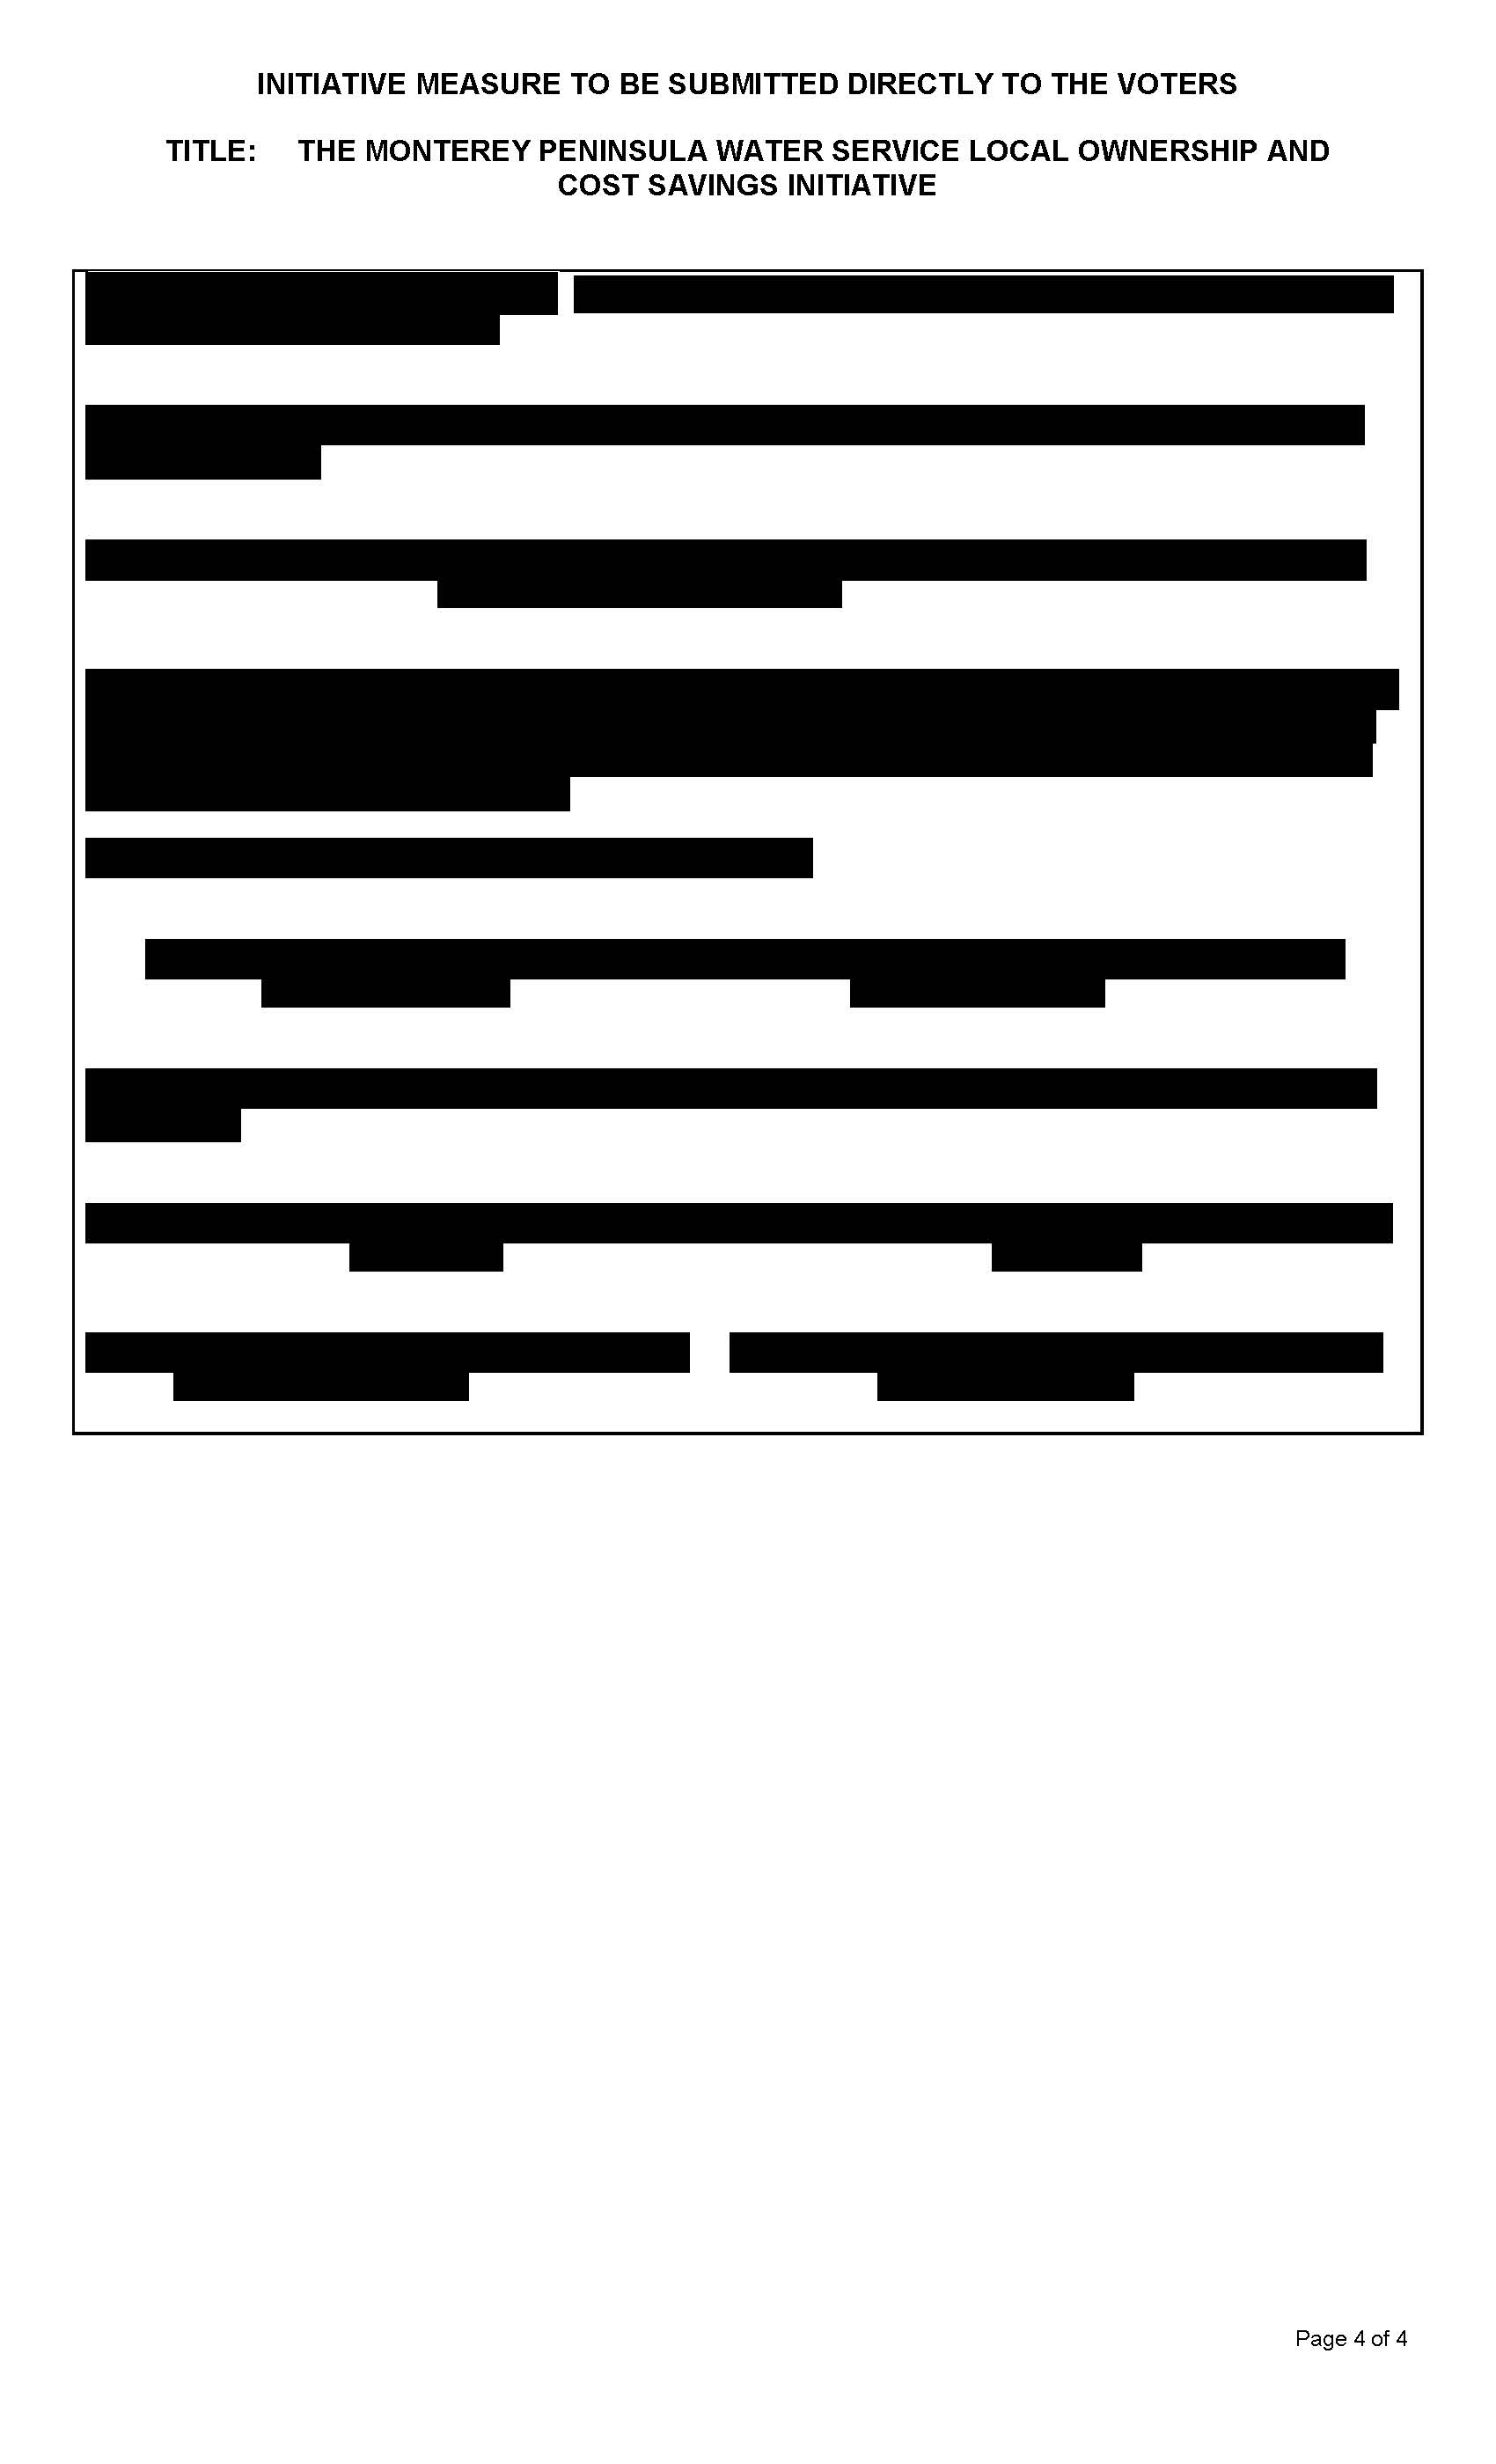 Petition_form_-_10-3-17_redacted_Page_4.jpg